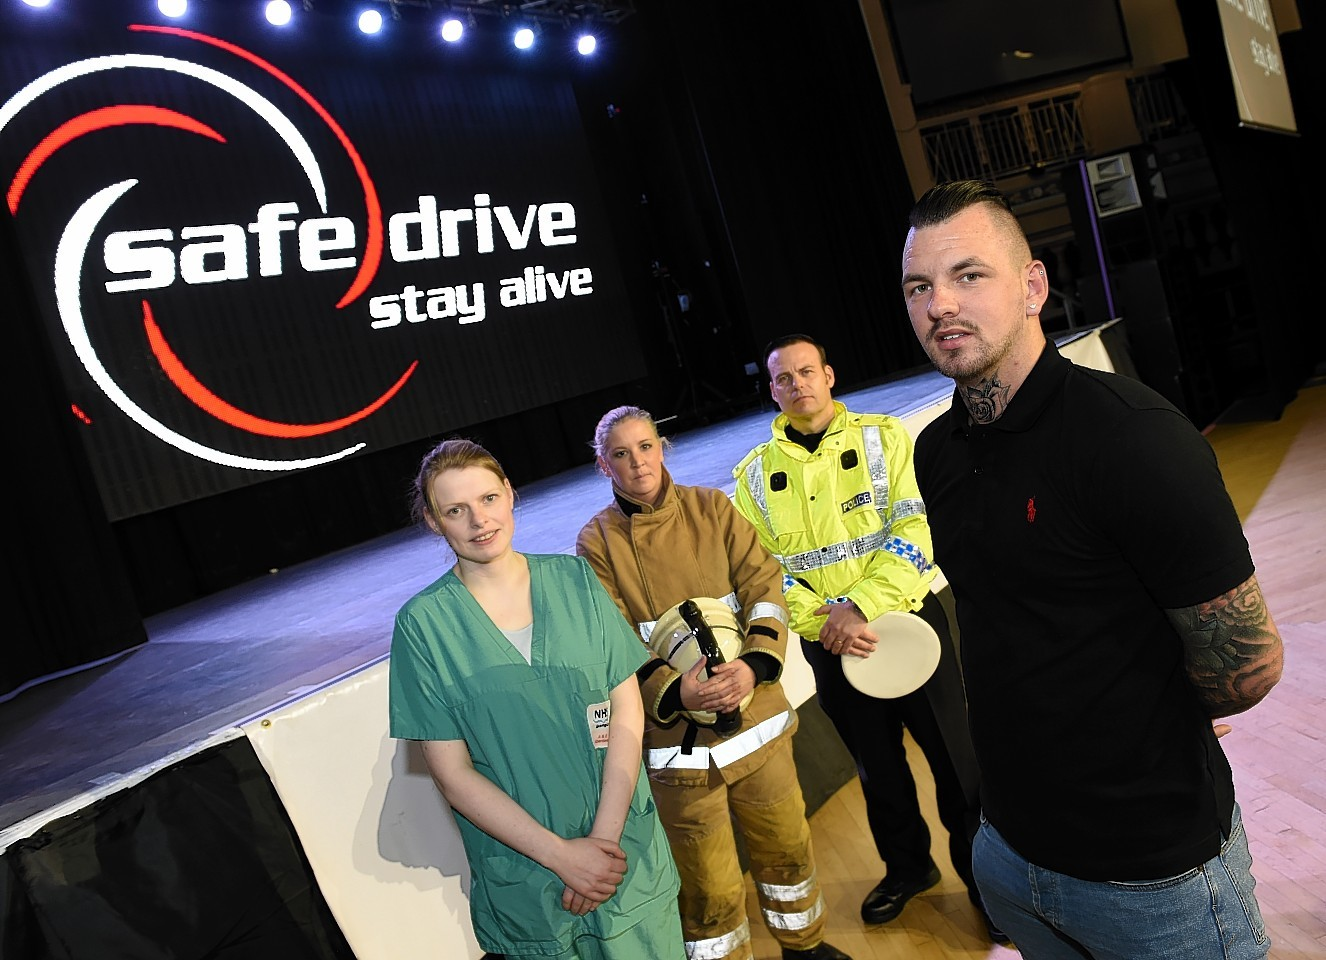 Dr June Whiteford, NHS Grampian, Lillian Shanks, Scottish Fire and Rescue Service, PC William Wallace, Scottish Police Force and ex Elgin City footballer Chris Tucker taking part in Safe Drive Stay Alive road safety show at the Beach Ballroom